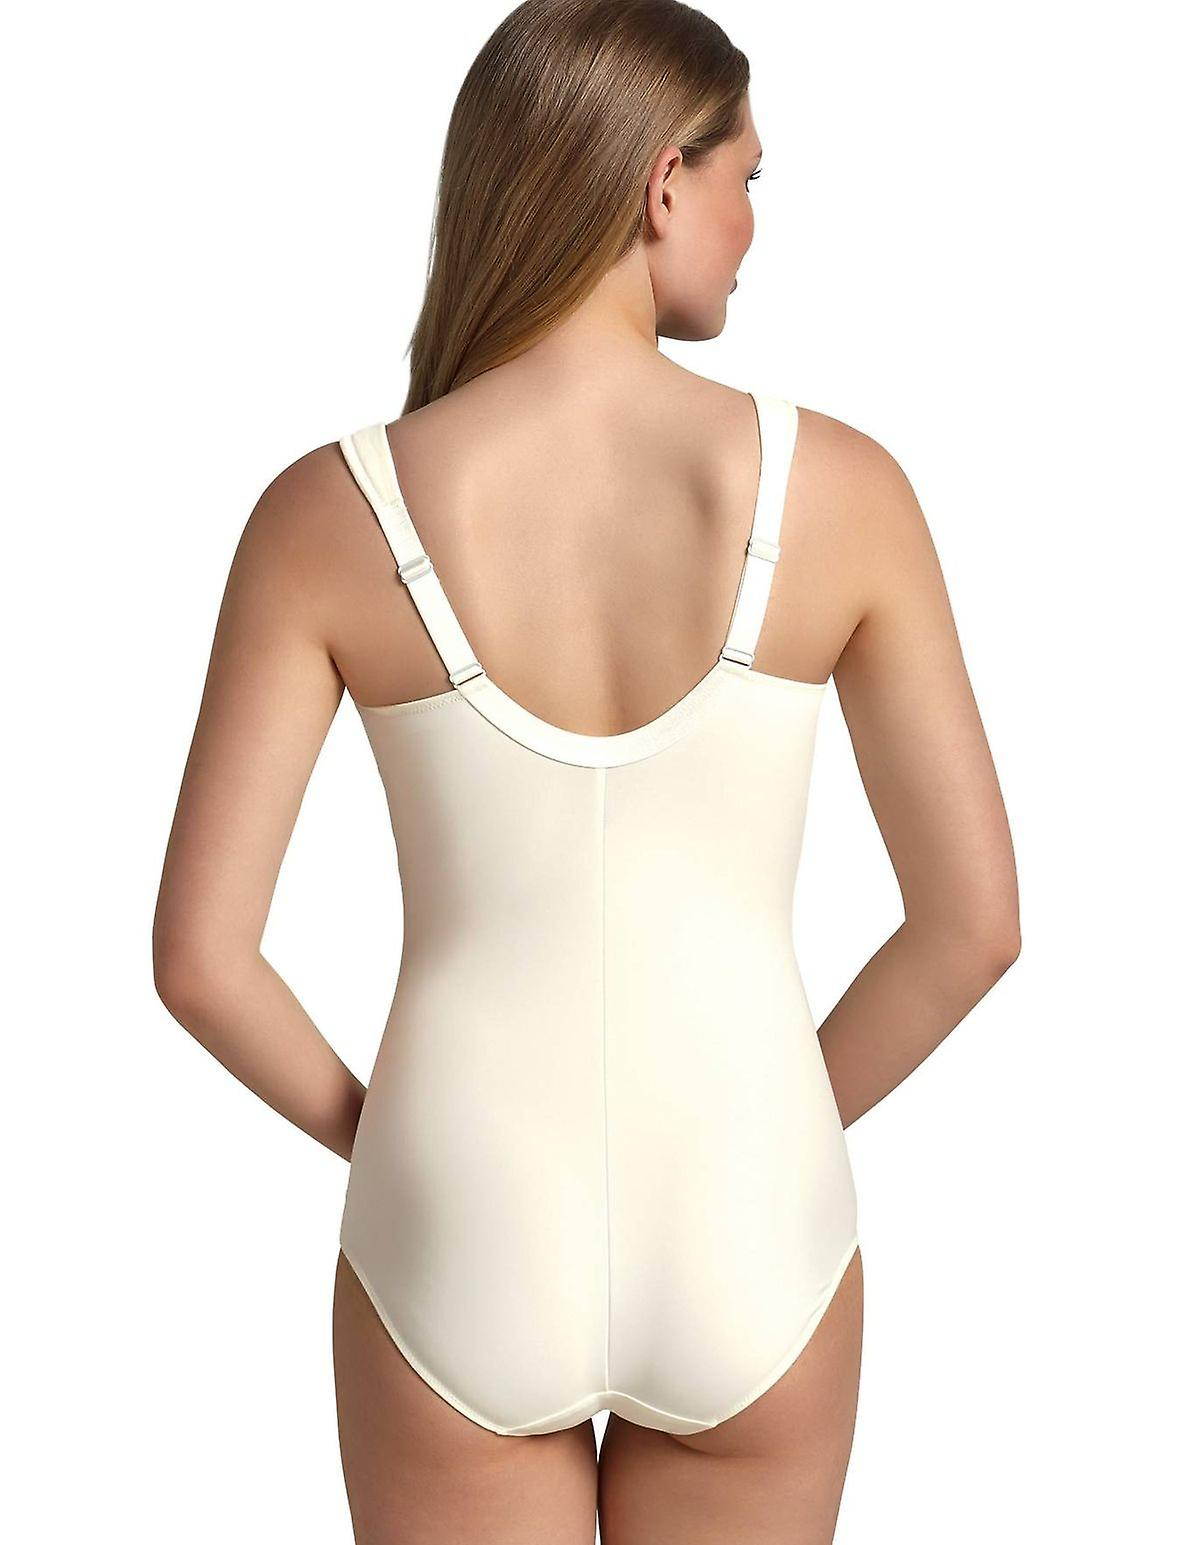 f343d23d7df09 Anita Comfort 3512-612 Women s Havanna Crystal Off-White Lace Non-Wired Firm